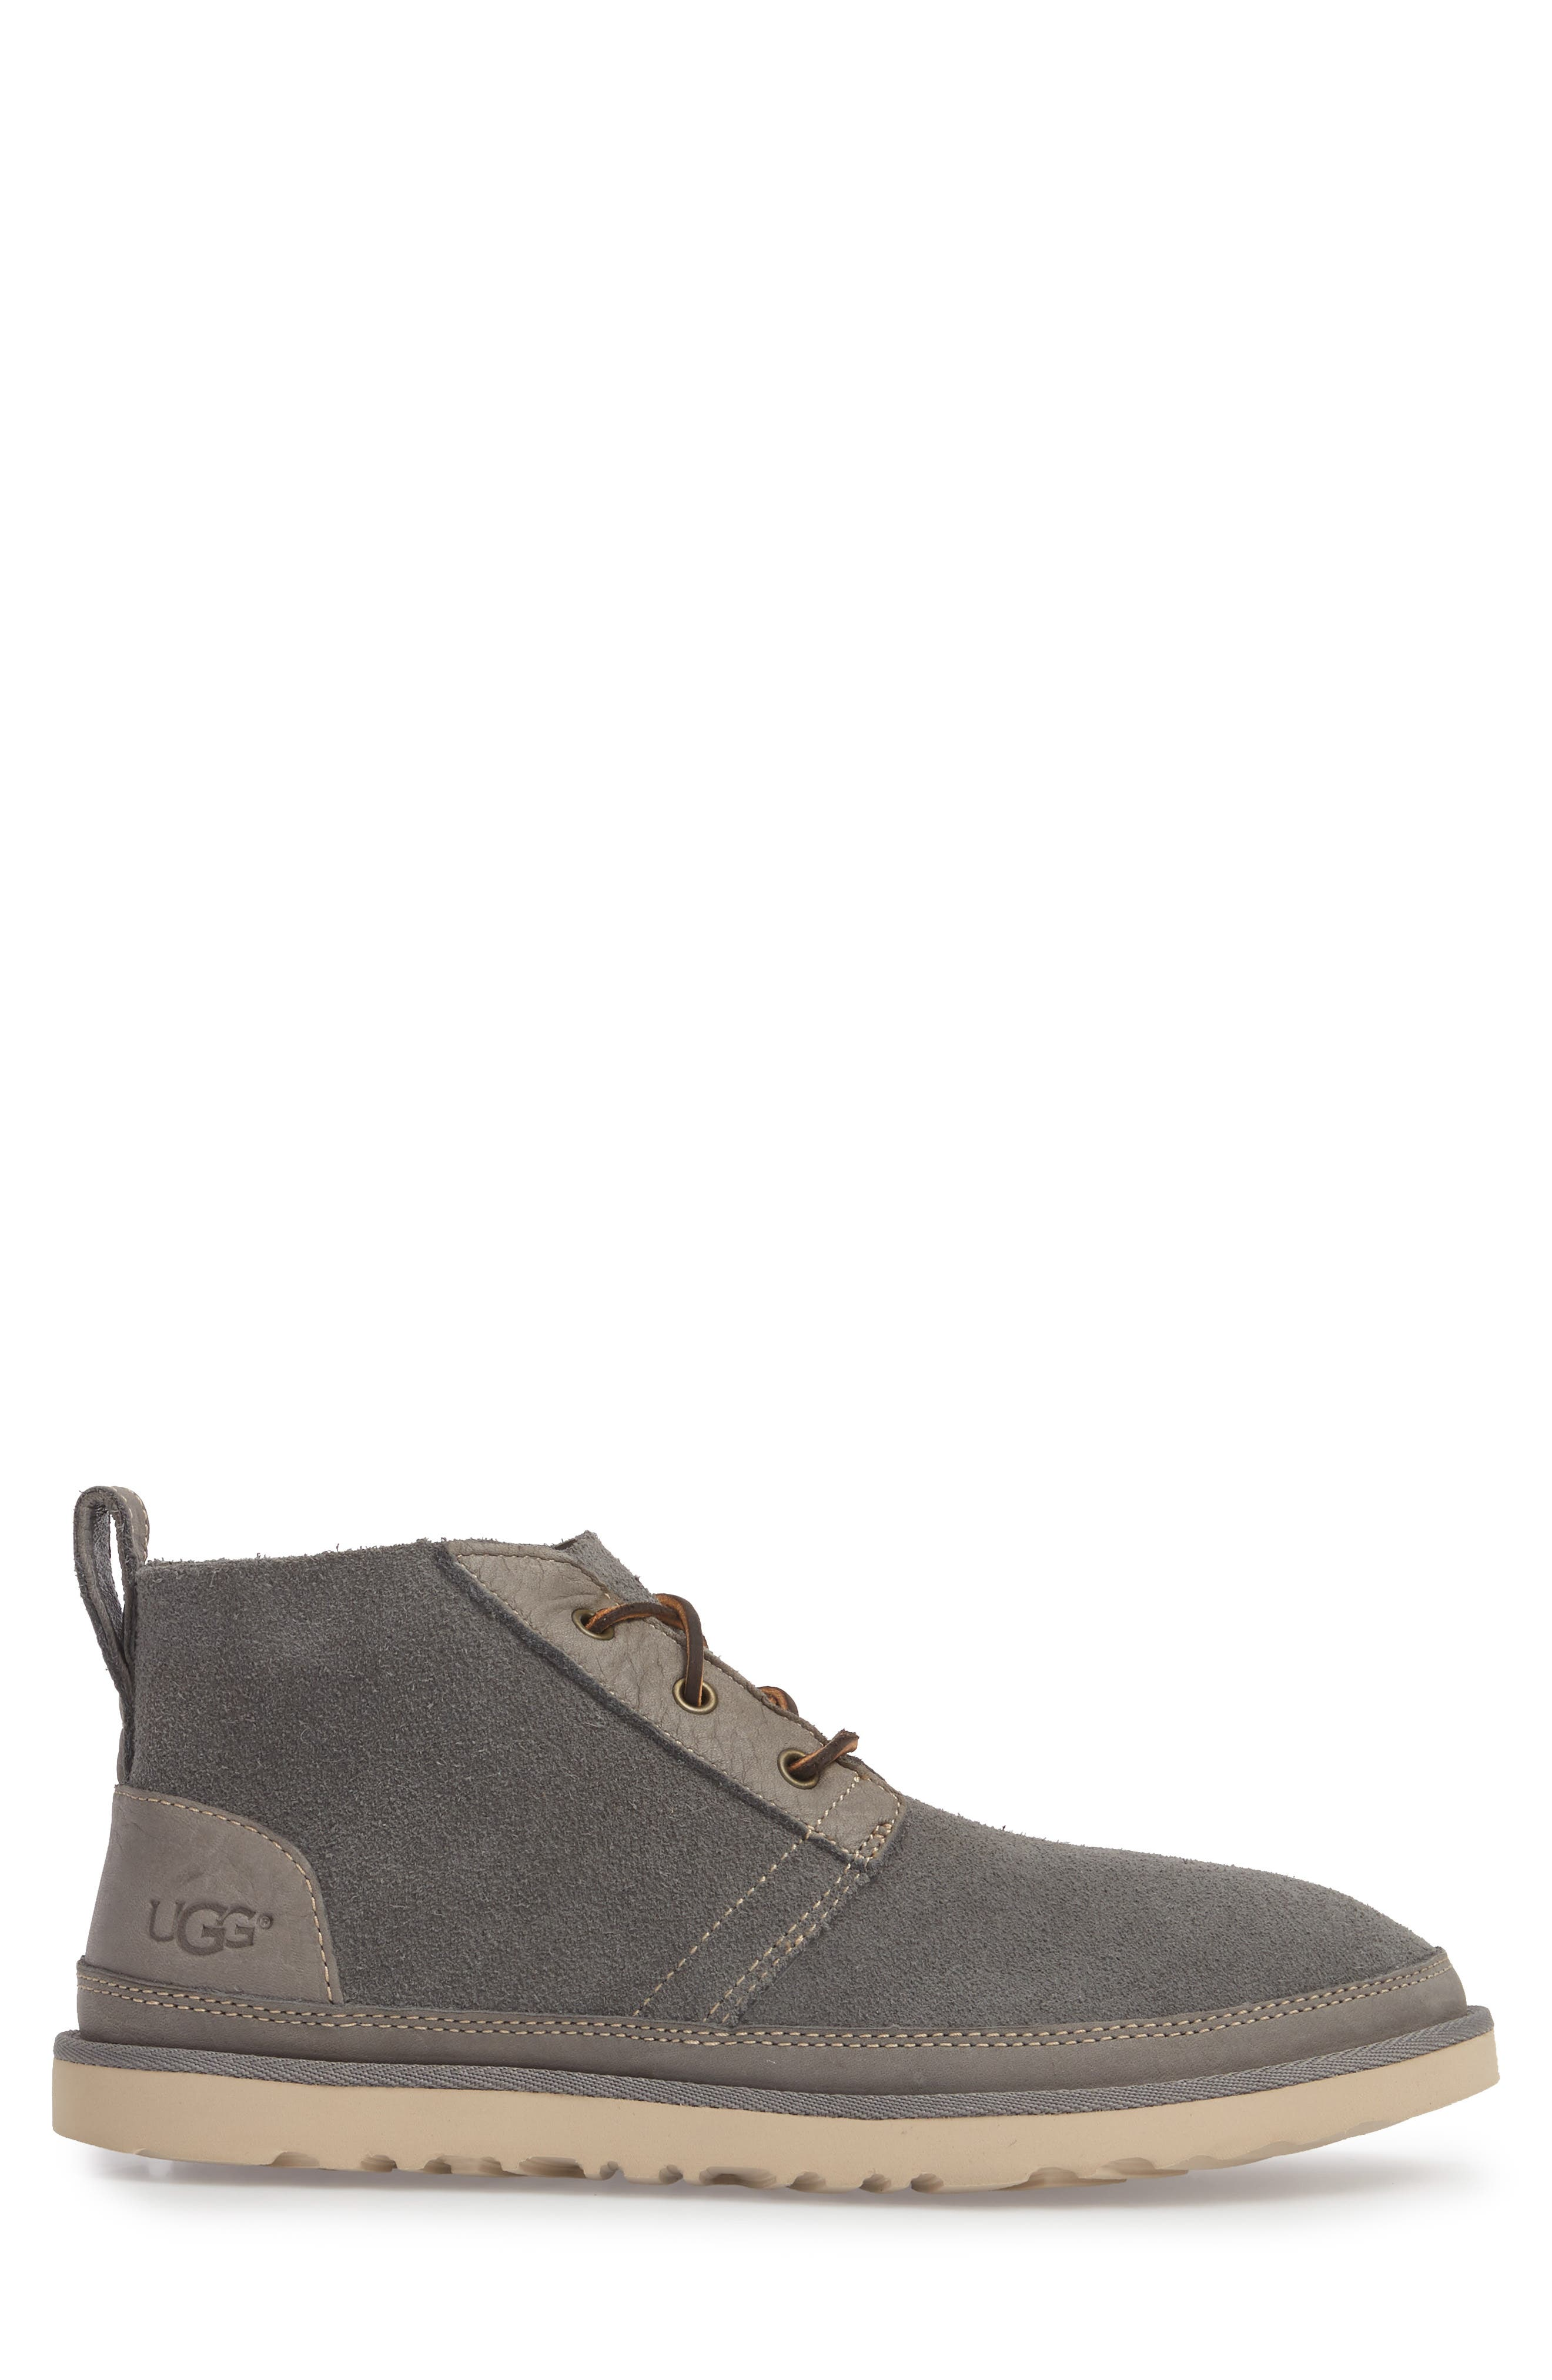 Neumel Unlined Chukka Boot,                             Alternate thumbnail 3, color,                             CHARCOAL LEATHER